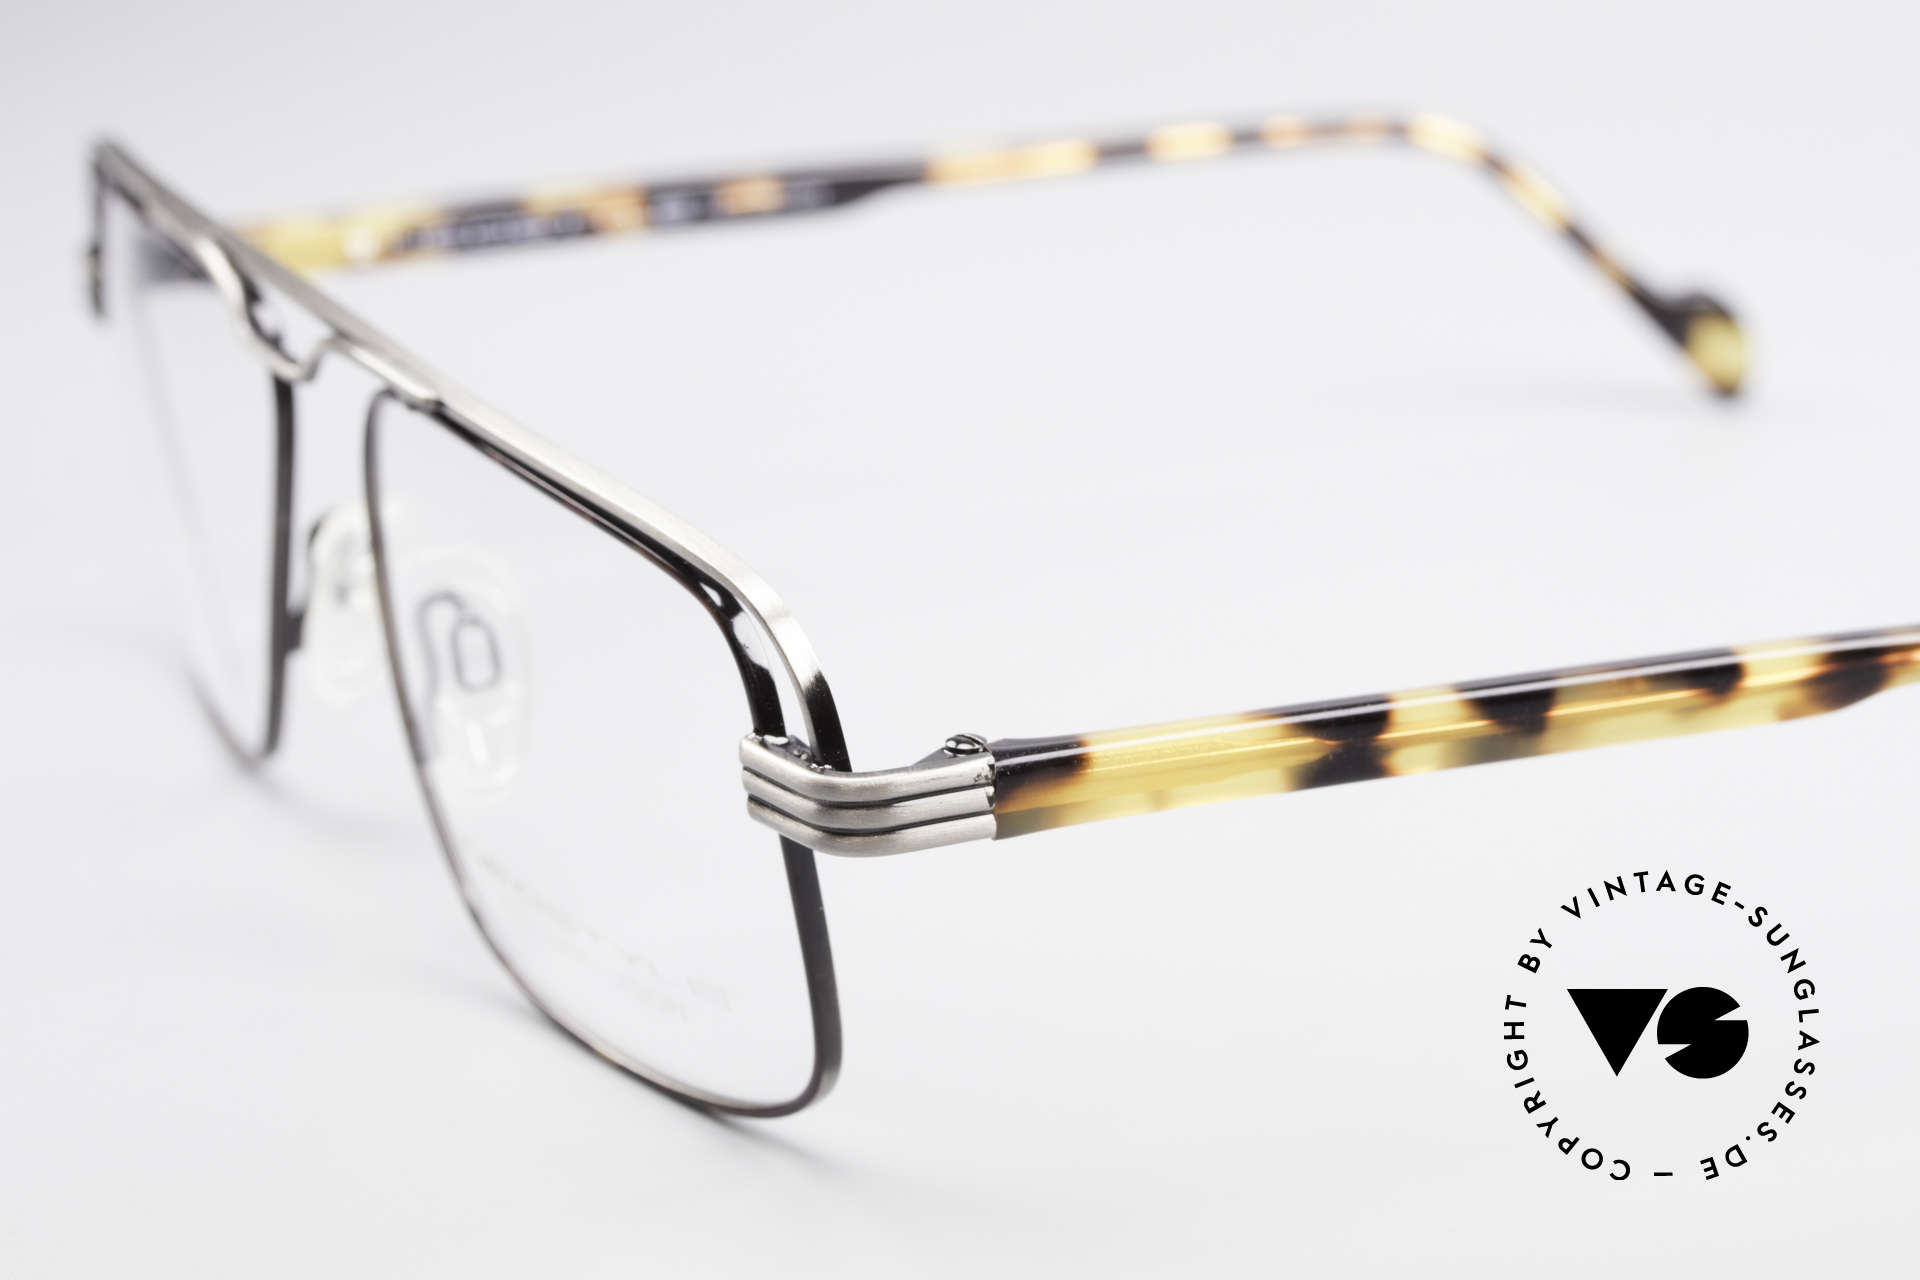 Neostyle Jet 230 80's Vintage No Retro Glasses, frame fits optical lenses or sun lenses of any kind, Made for Men